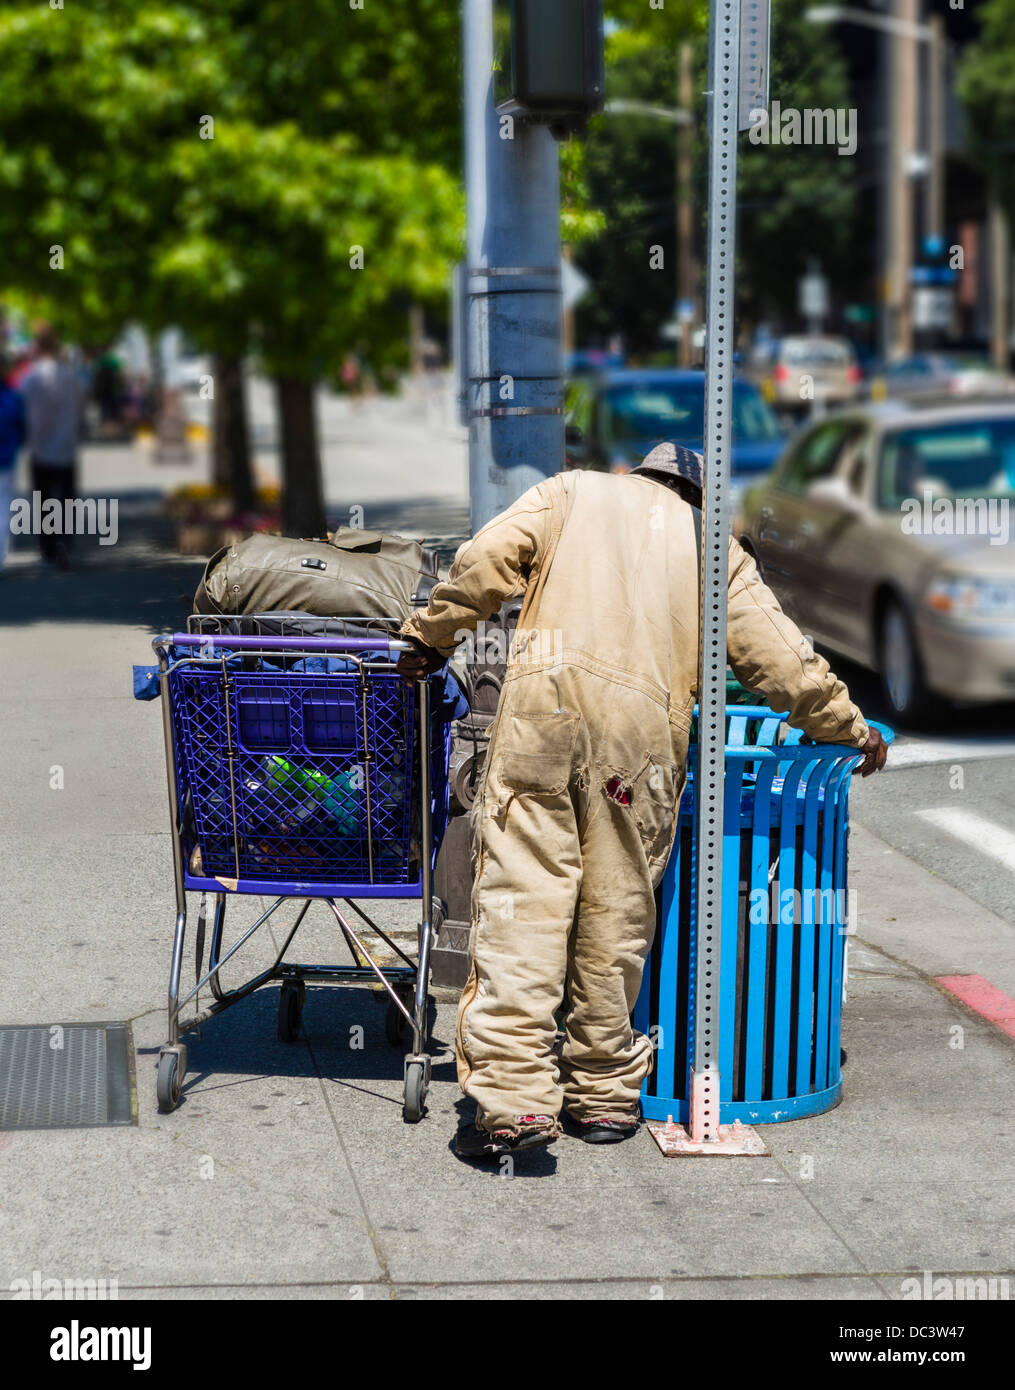 Homeless man with a shopping cart scavenging in a trash can, Seattle, Washington, USA - Stock Image